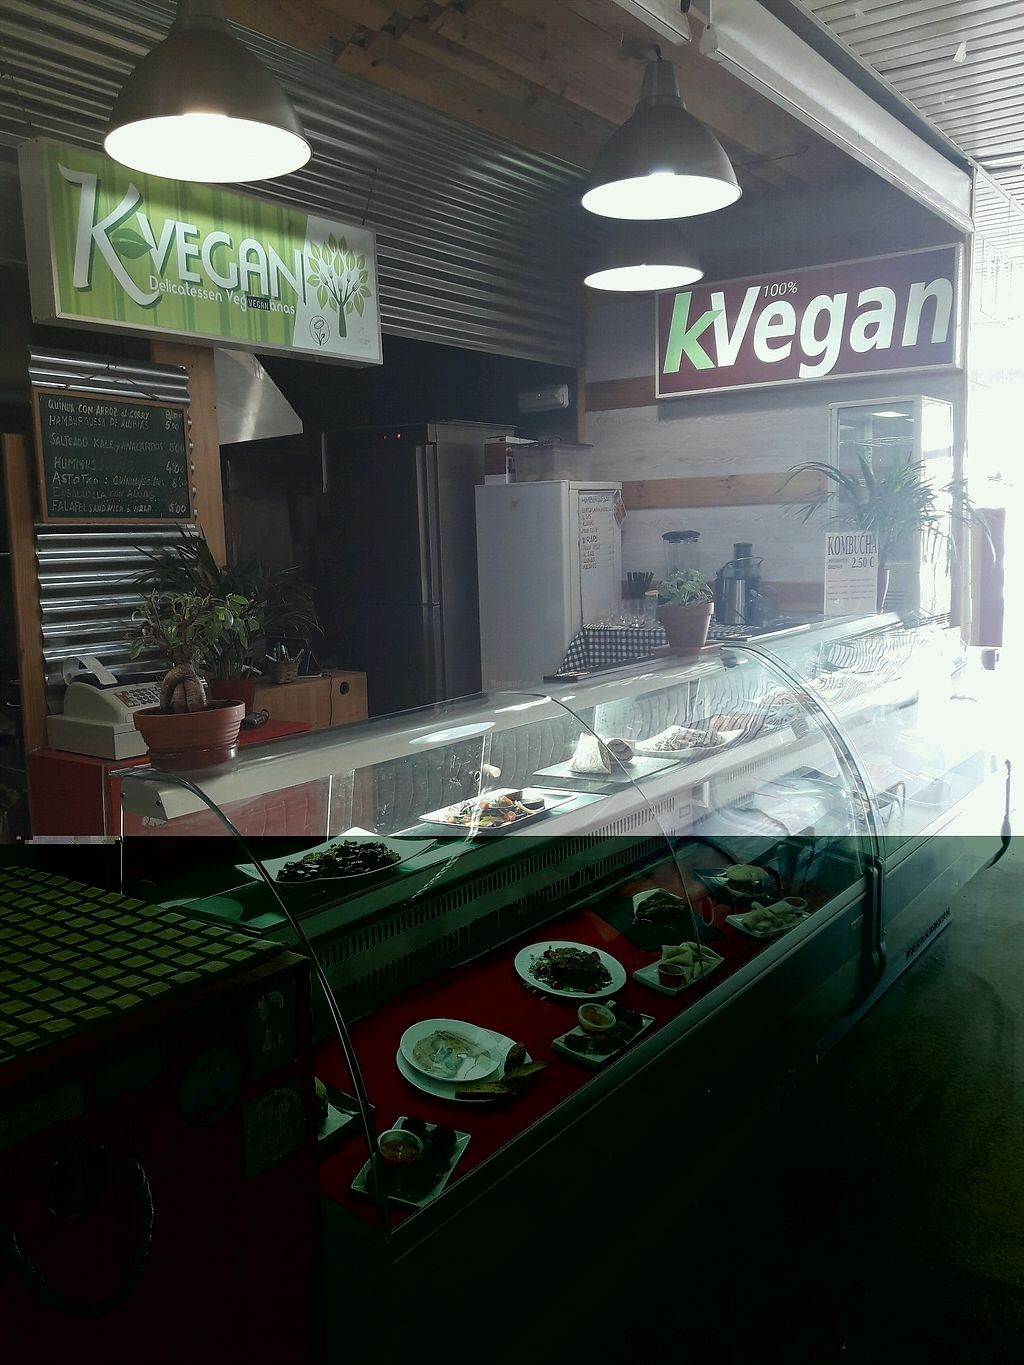 """Photo of K-Vegan  by <a href=""""/members/profile/RichardJohnHewitt"""">RichardJohnHewitt</a> <br/>New double local <br/> December 10, 2017  - <a href='/contact/abuse/image/52654/334307'>Report</a>"""